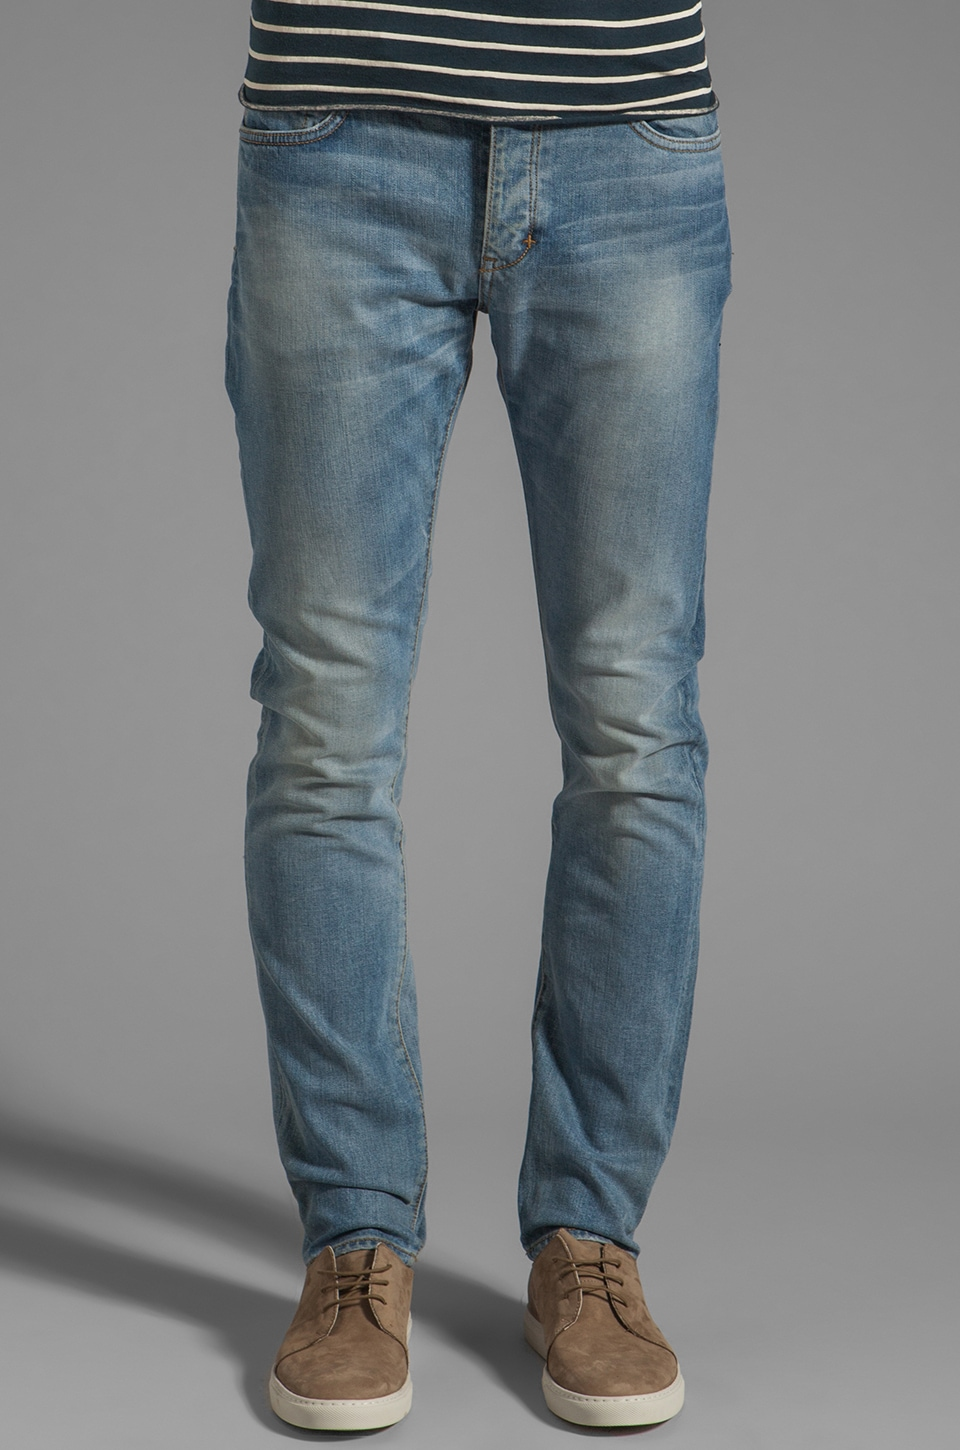 NEUW Iggy Skinny Jeans in Atomic Air